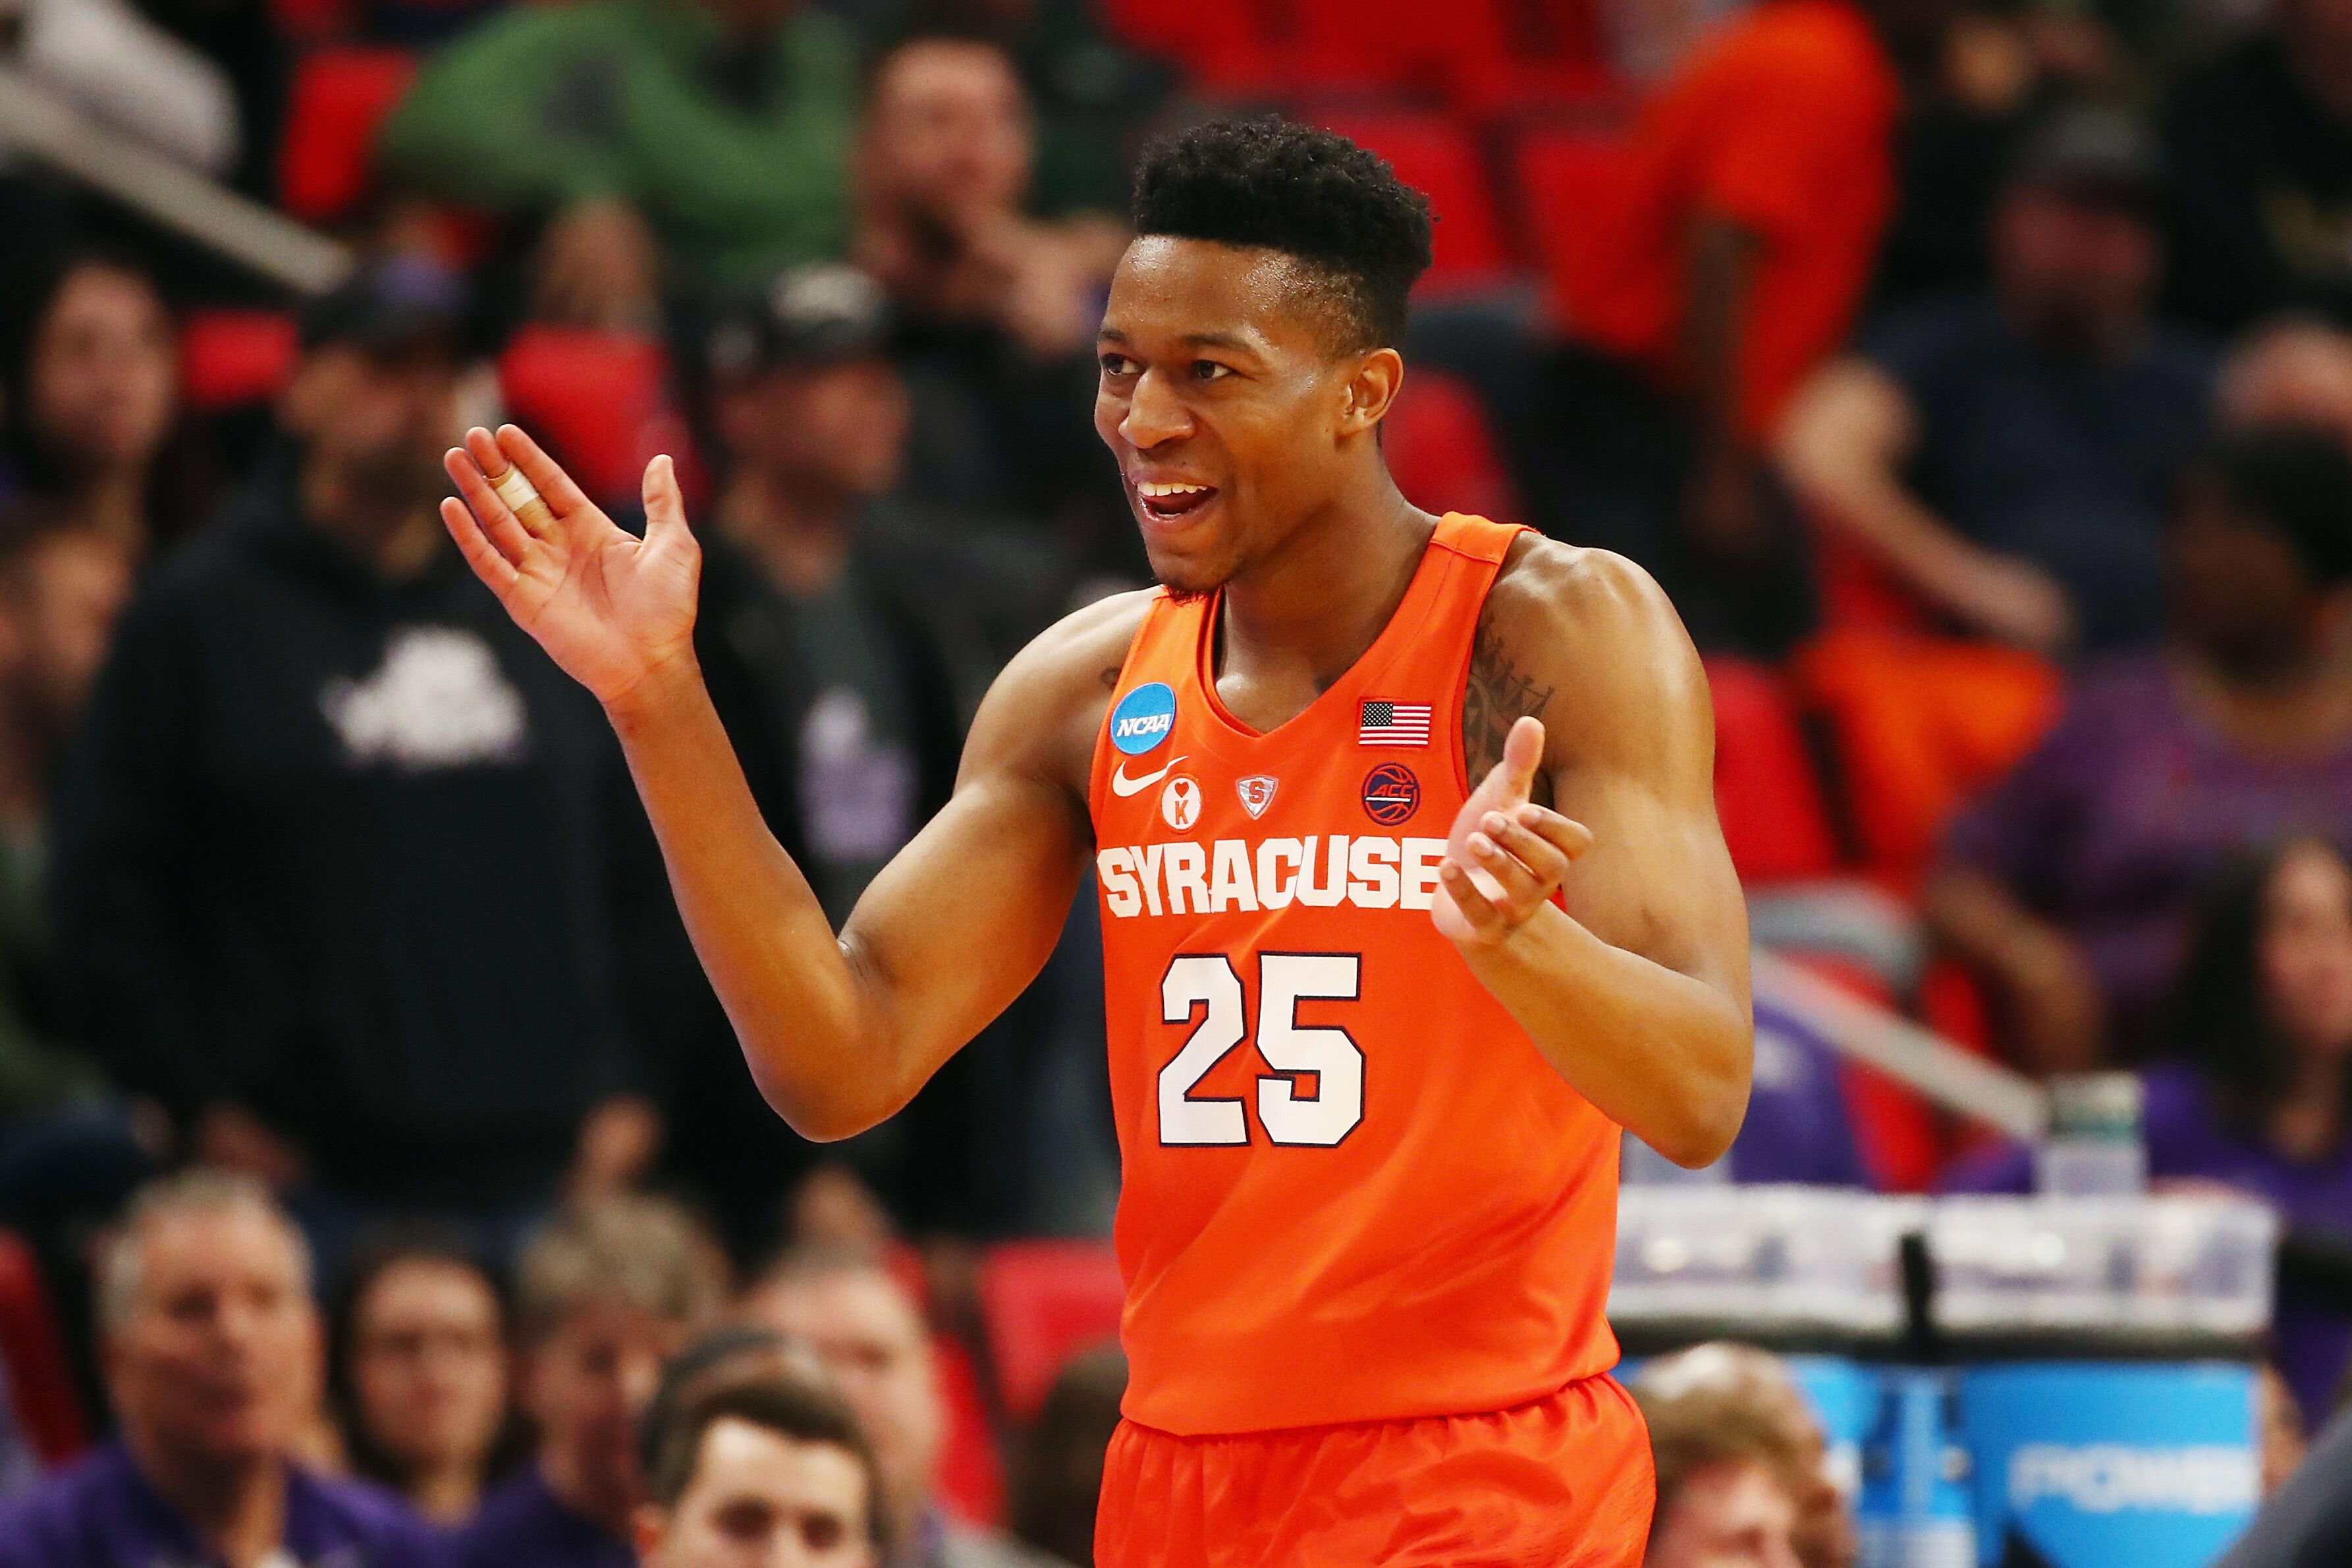 Michigan State Basketball Getting To Know The Syracuse Orange